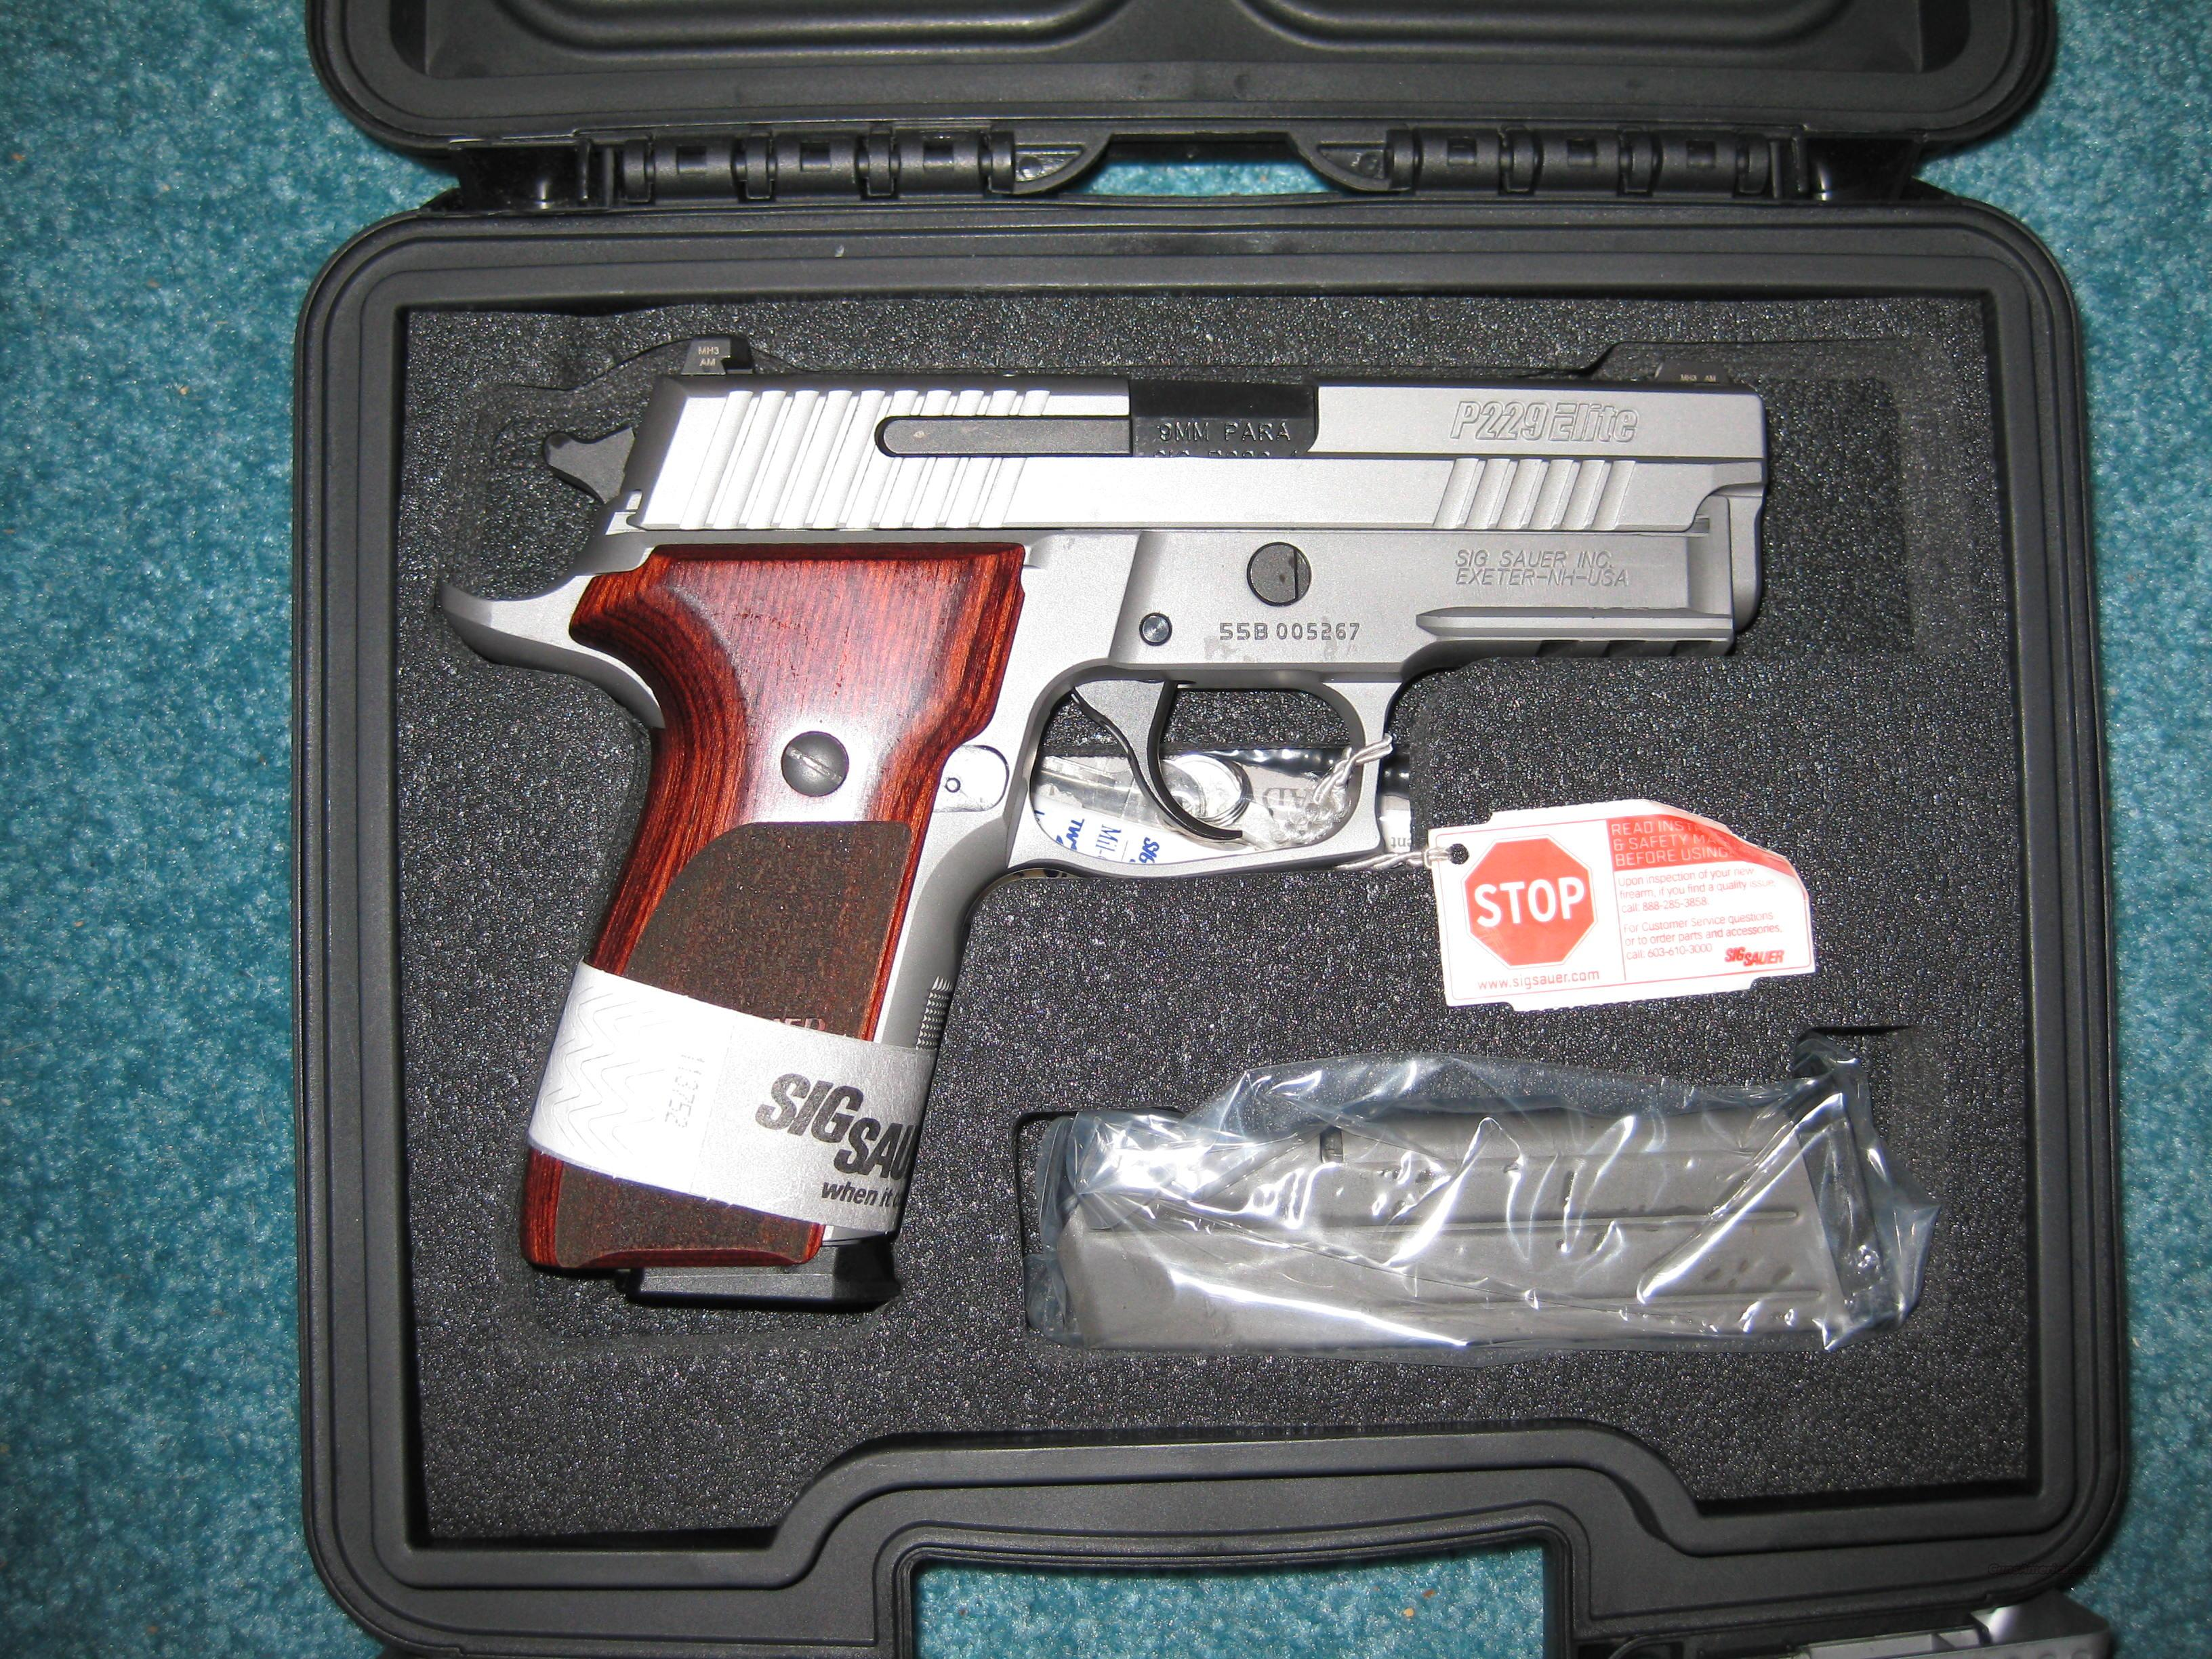 NEW SIG P229 ELITE STAINLESS 9MM  Guns > Pistols > Sig - Sauer/Sigarms Pistols > P229